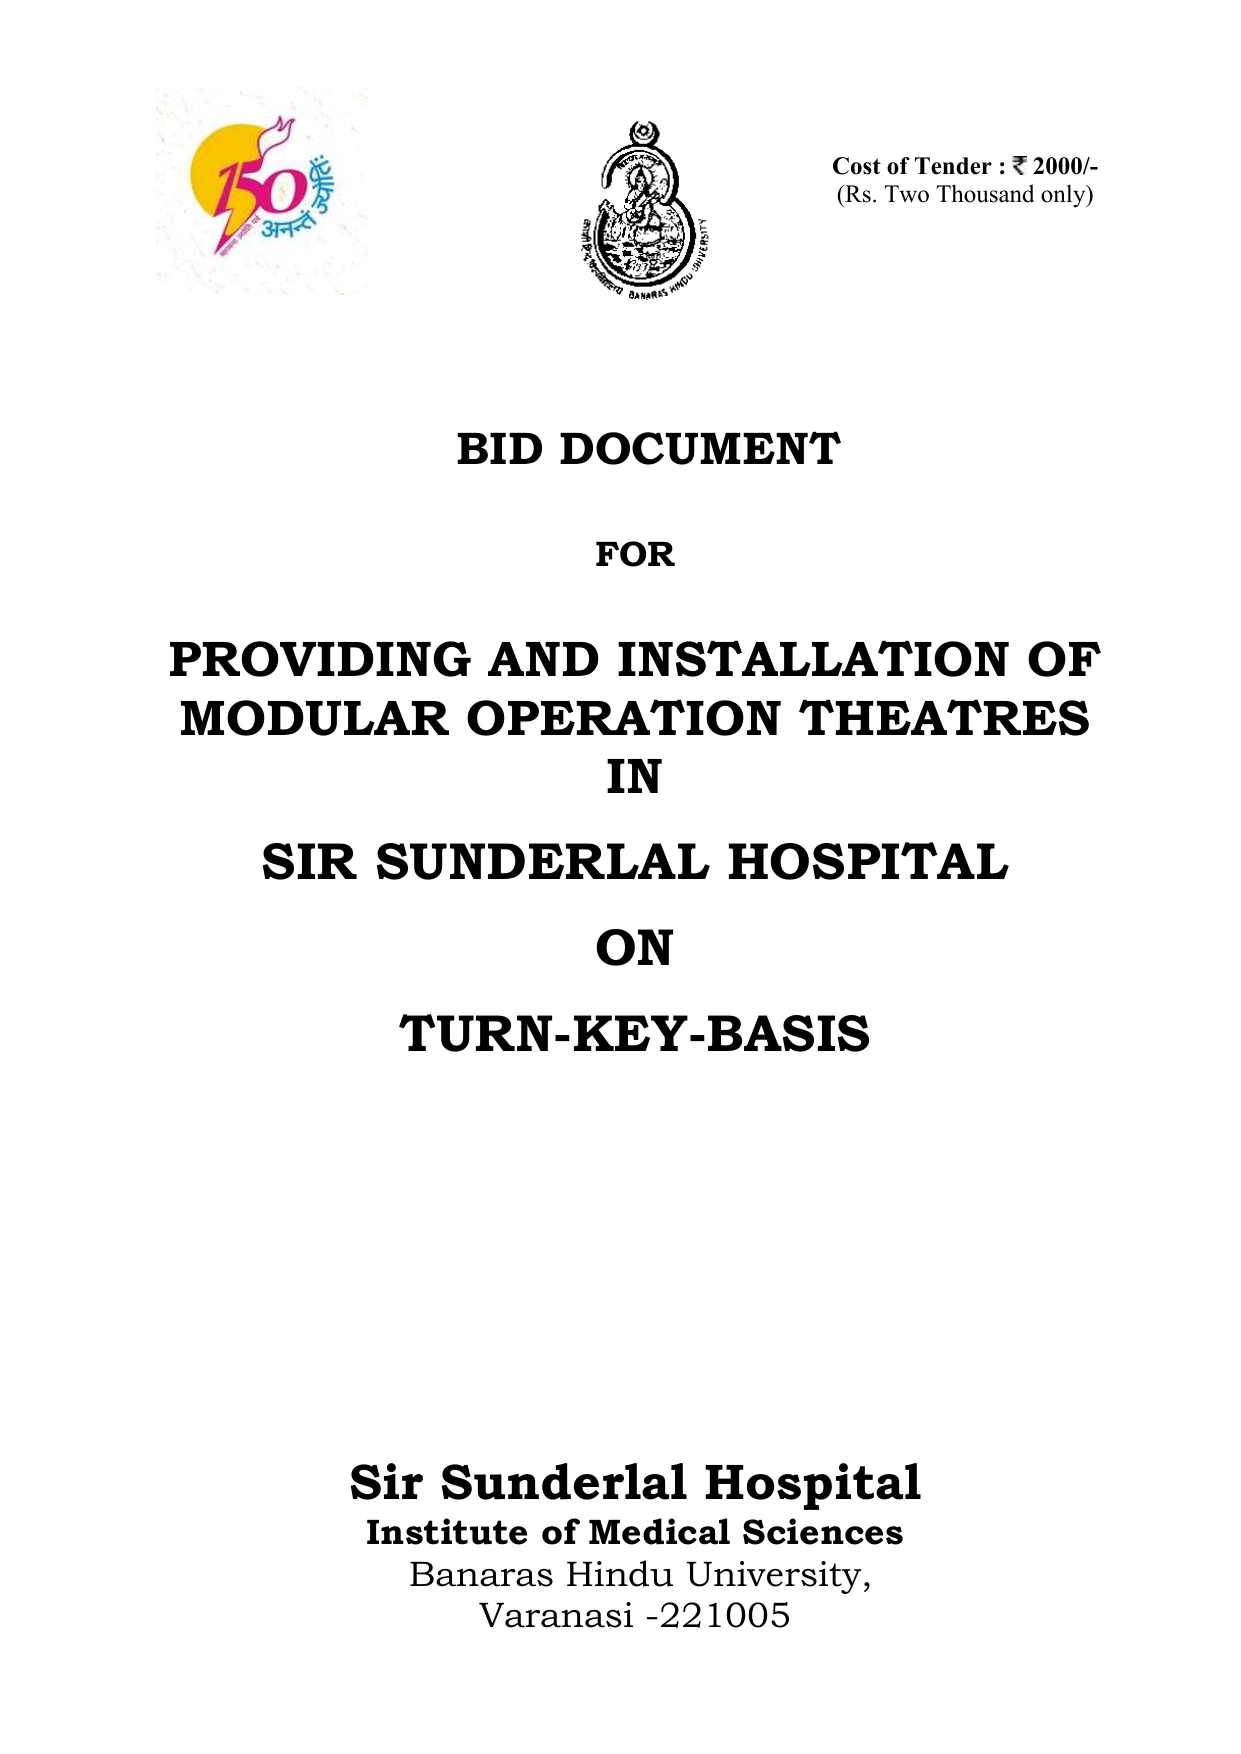 BID DOCUMENT FOR PROVIDING AND INSTALLATION OF MODULAR